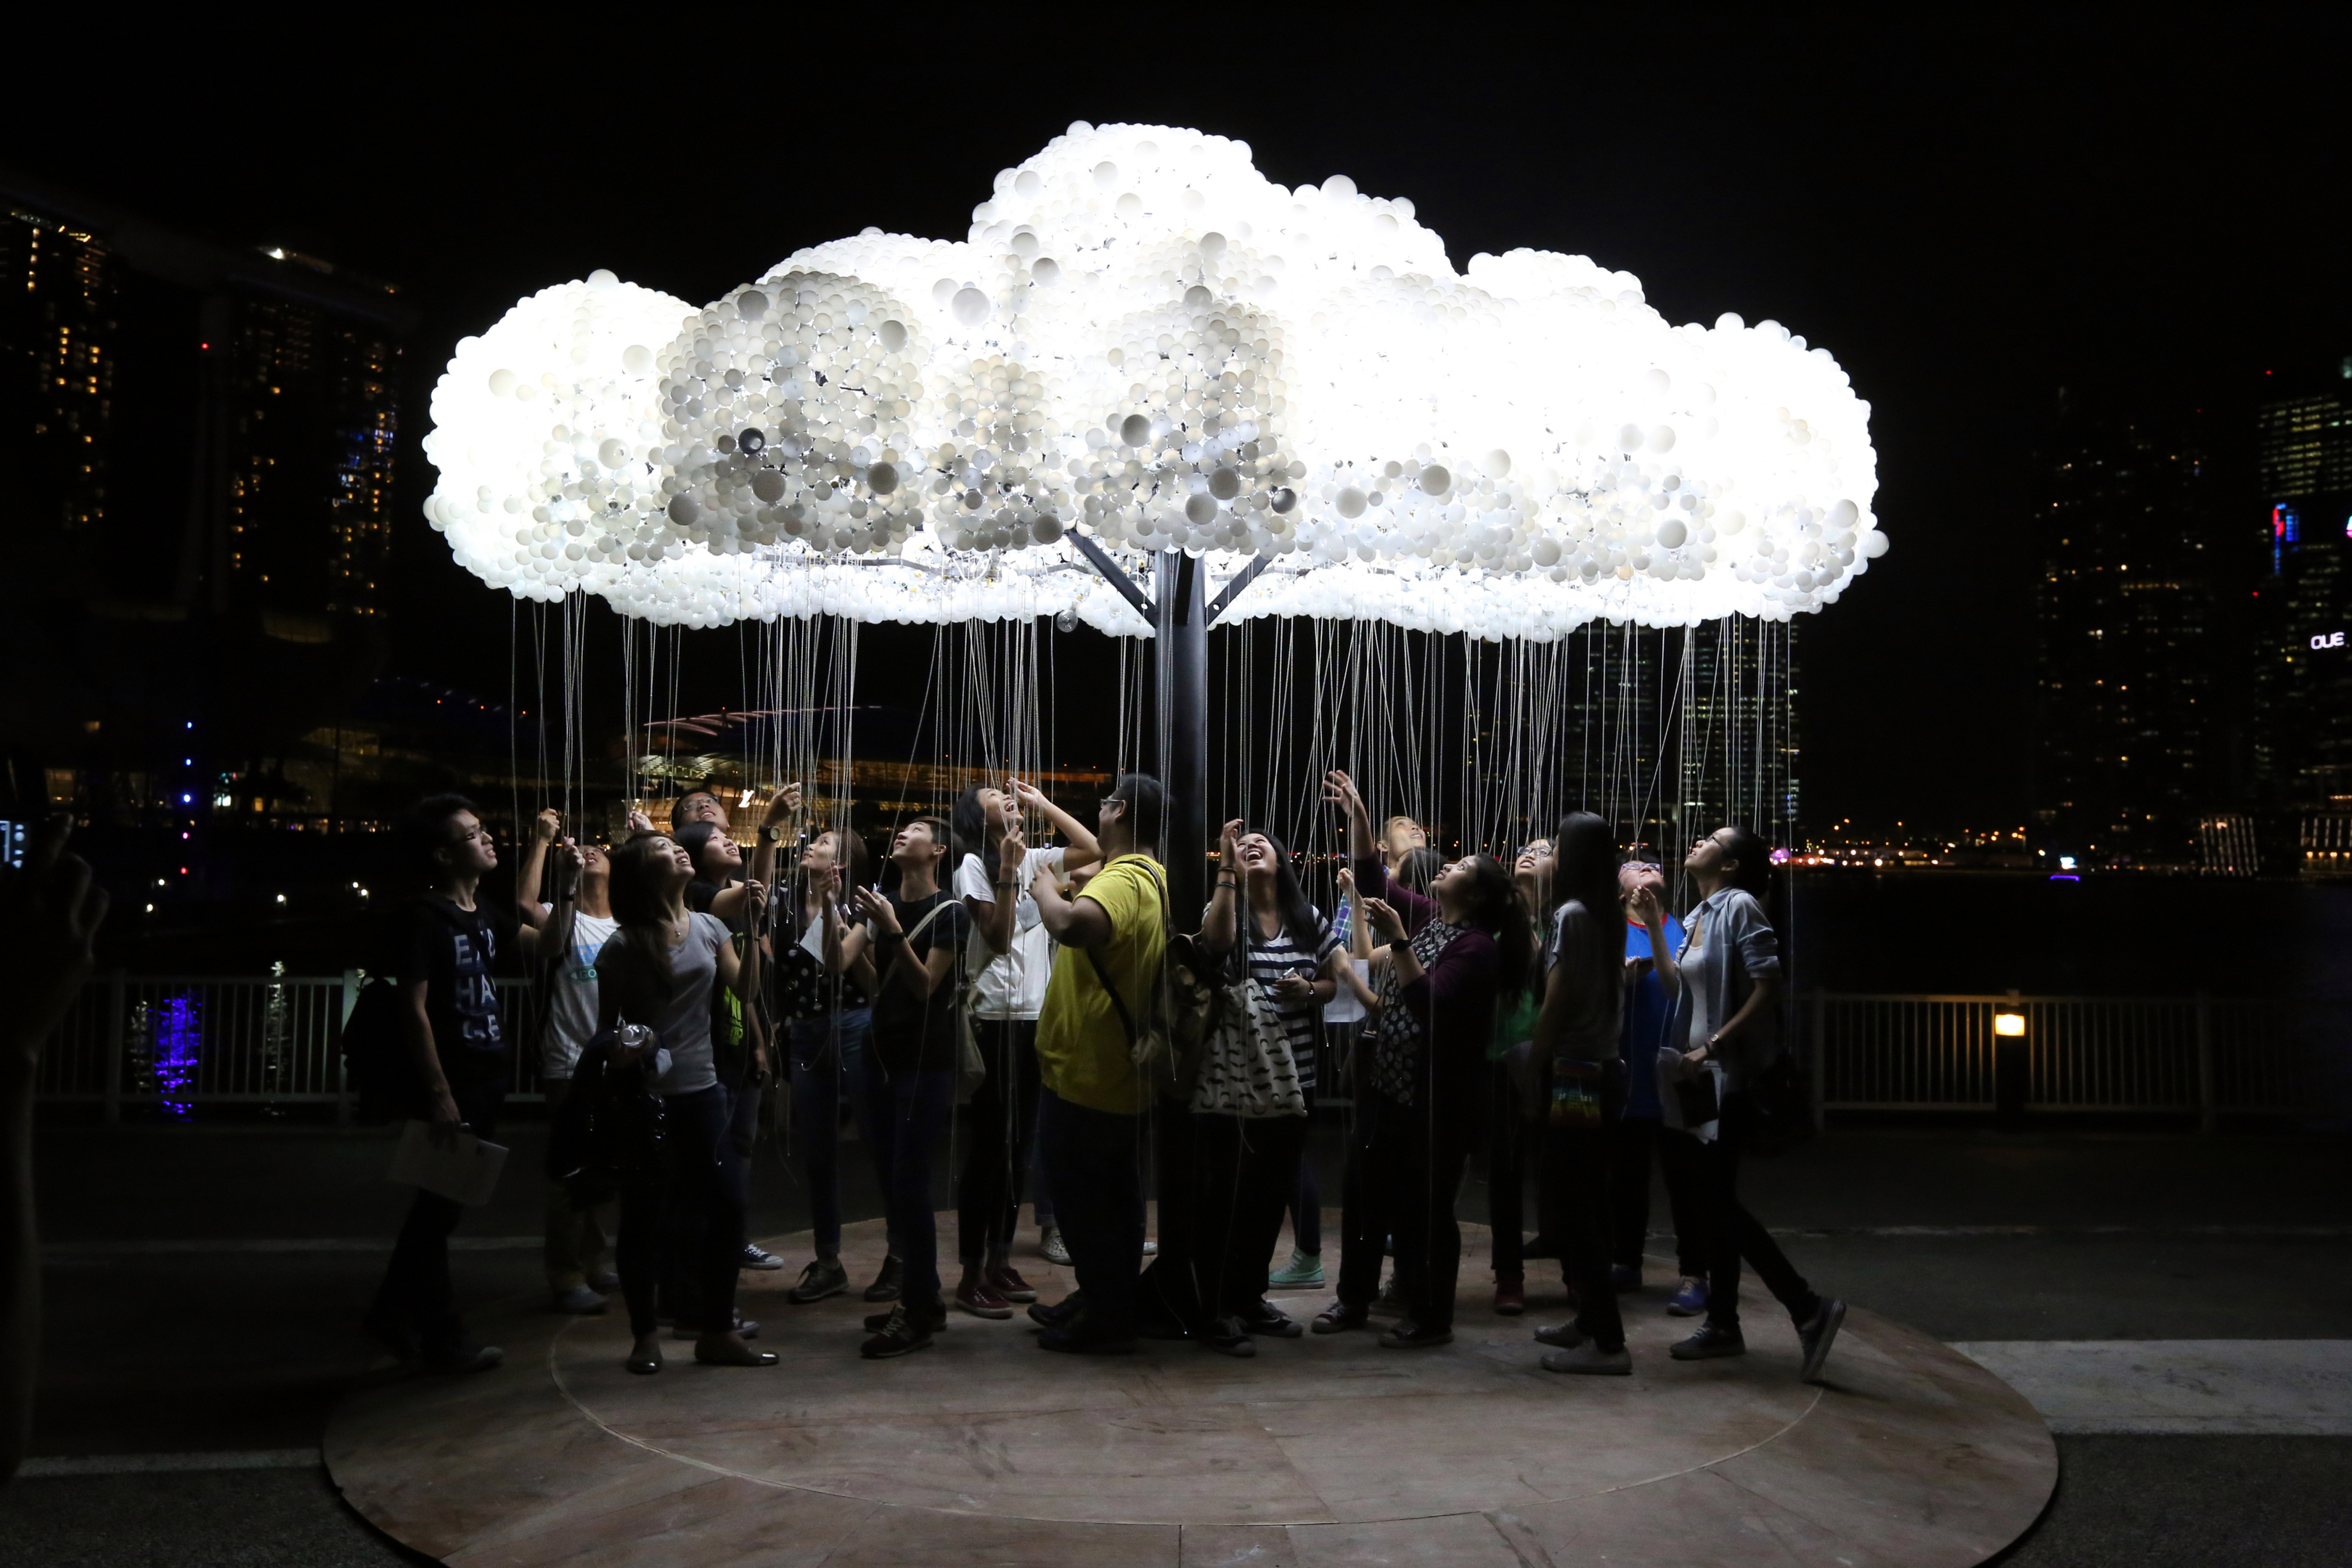 The CLOUD display was at this year's SPECTRA festival.